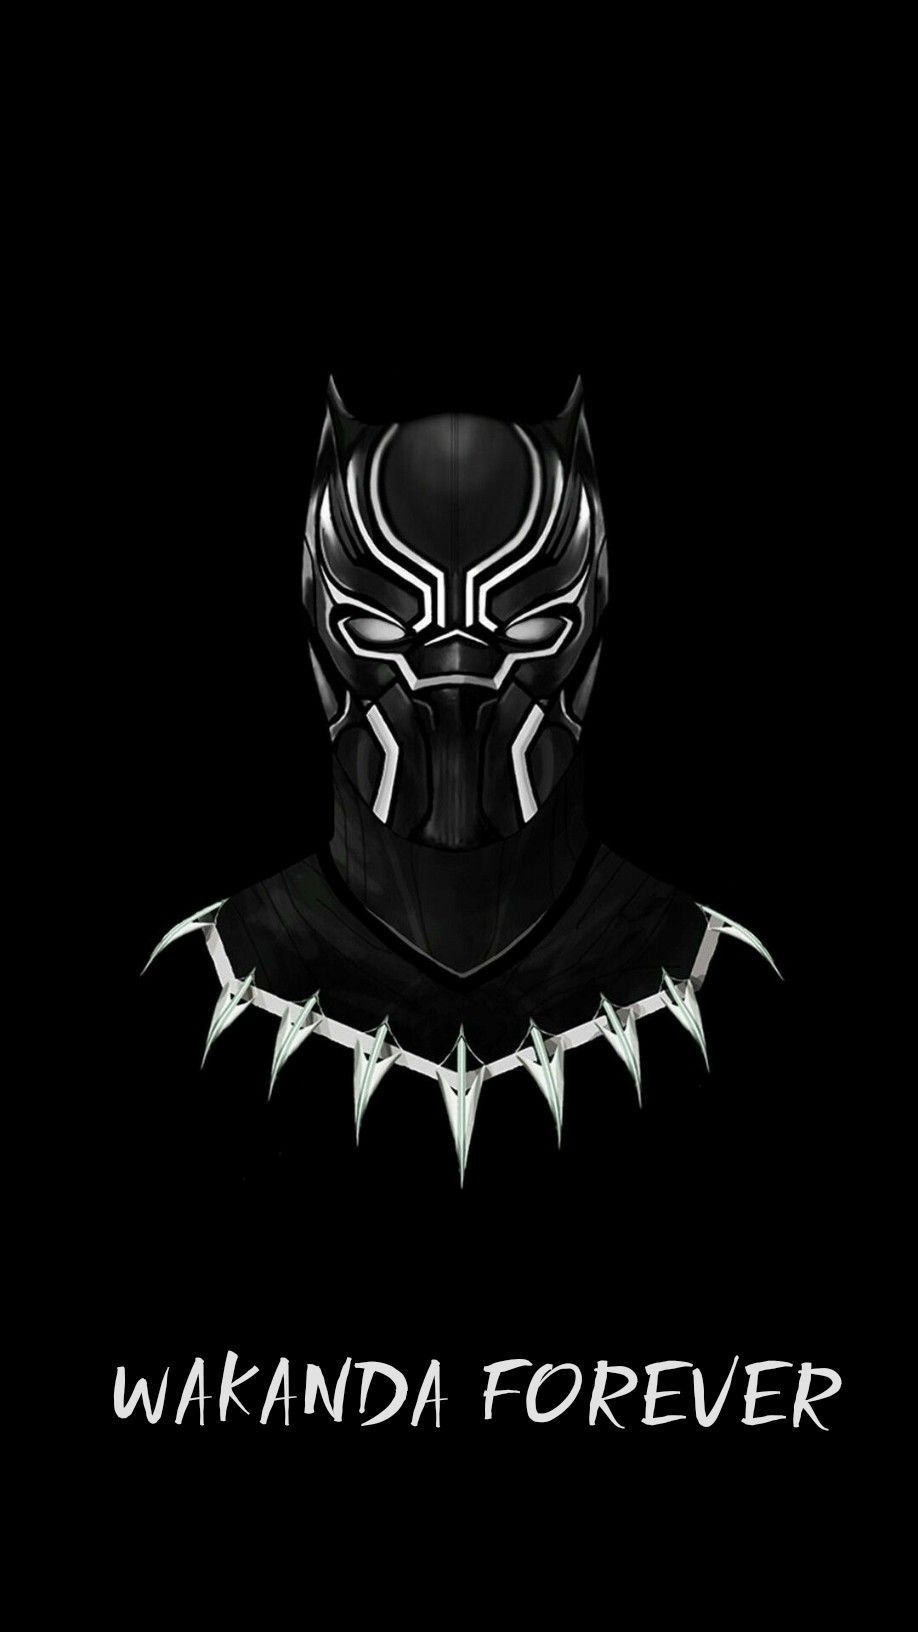 2020 Wallpapers Best Wallpapers Collection Iphone Wallpapers Backgrounds Marvel Wallpaper Hd Black Panther Marvel Deadpool Wallpaper